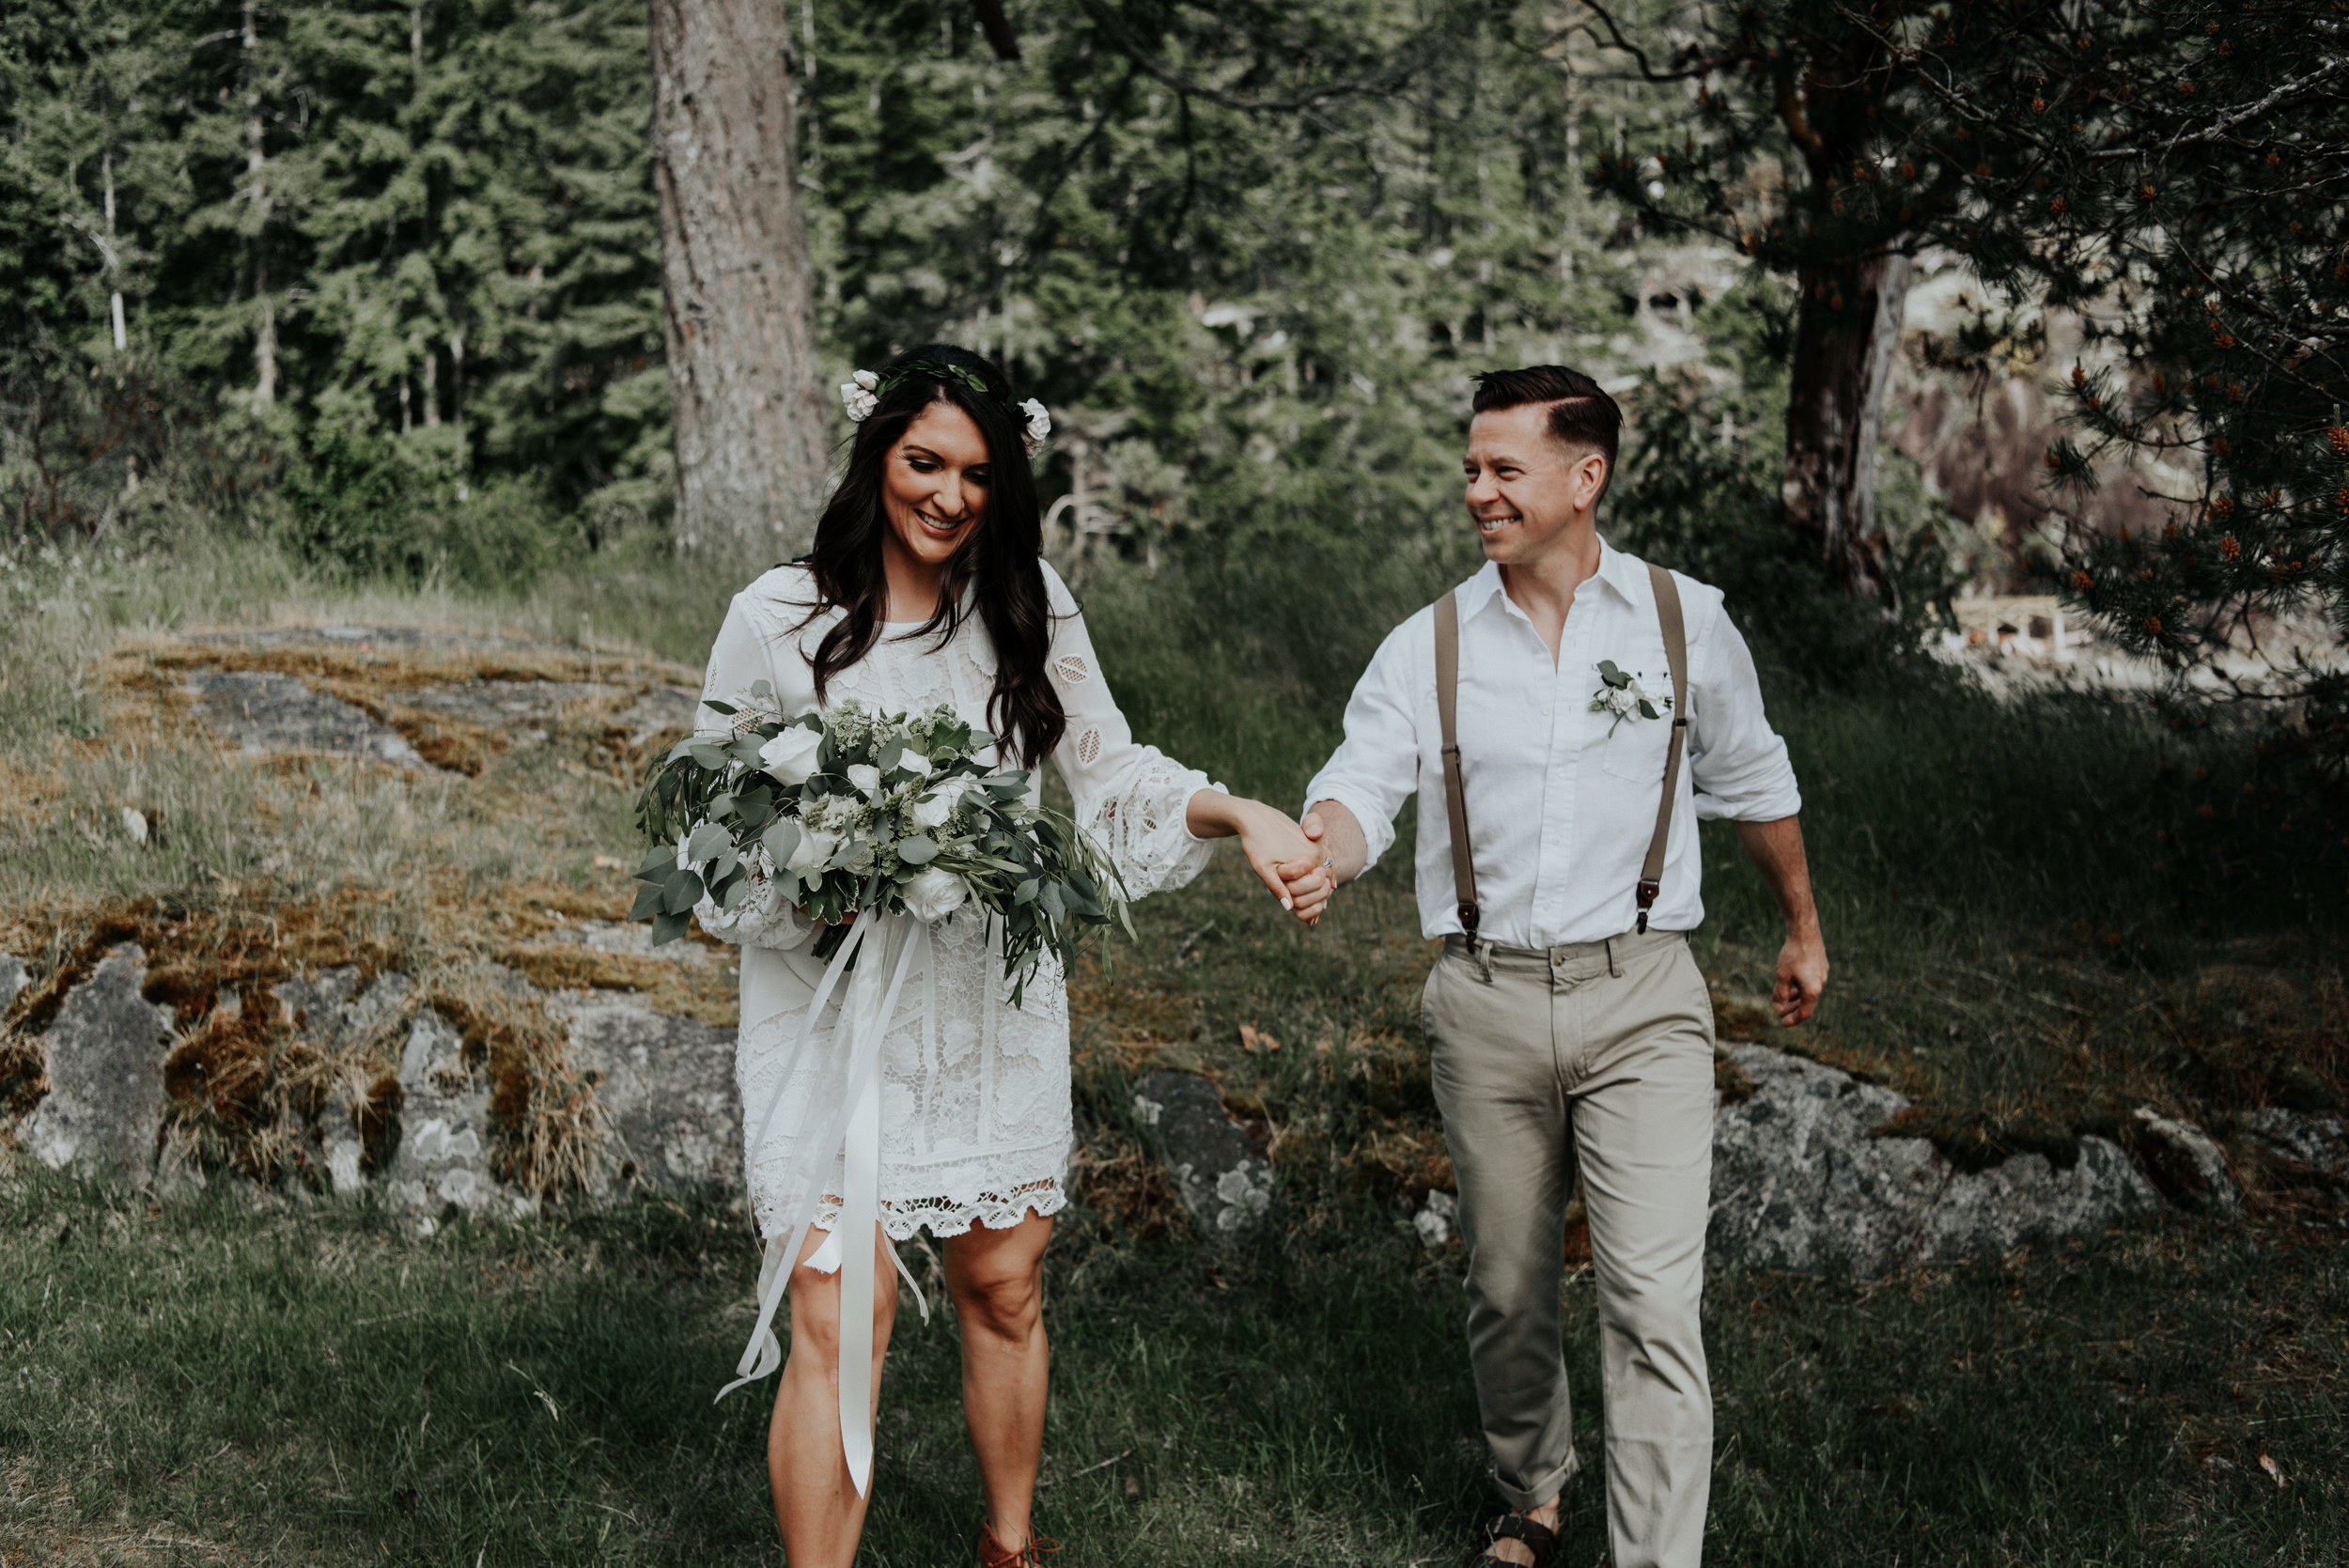 Ashley + Jeff - Rockwater Resort Elopement - Sunshine Coast BC Photographer - Laura Olson Photography-4152.jpg